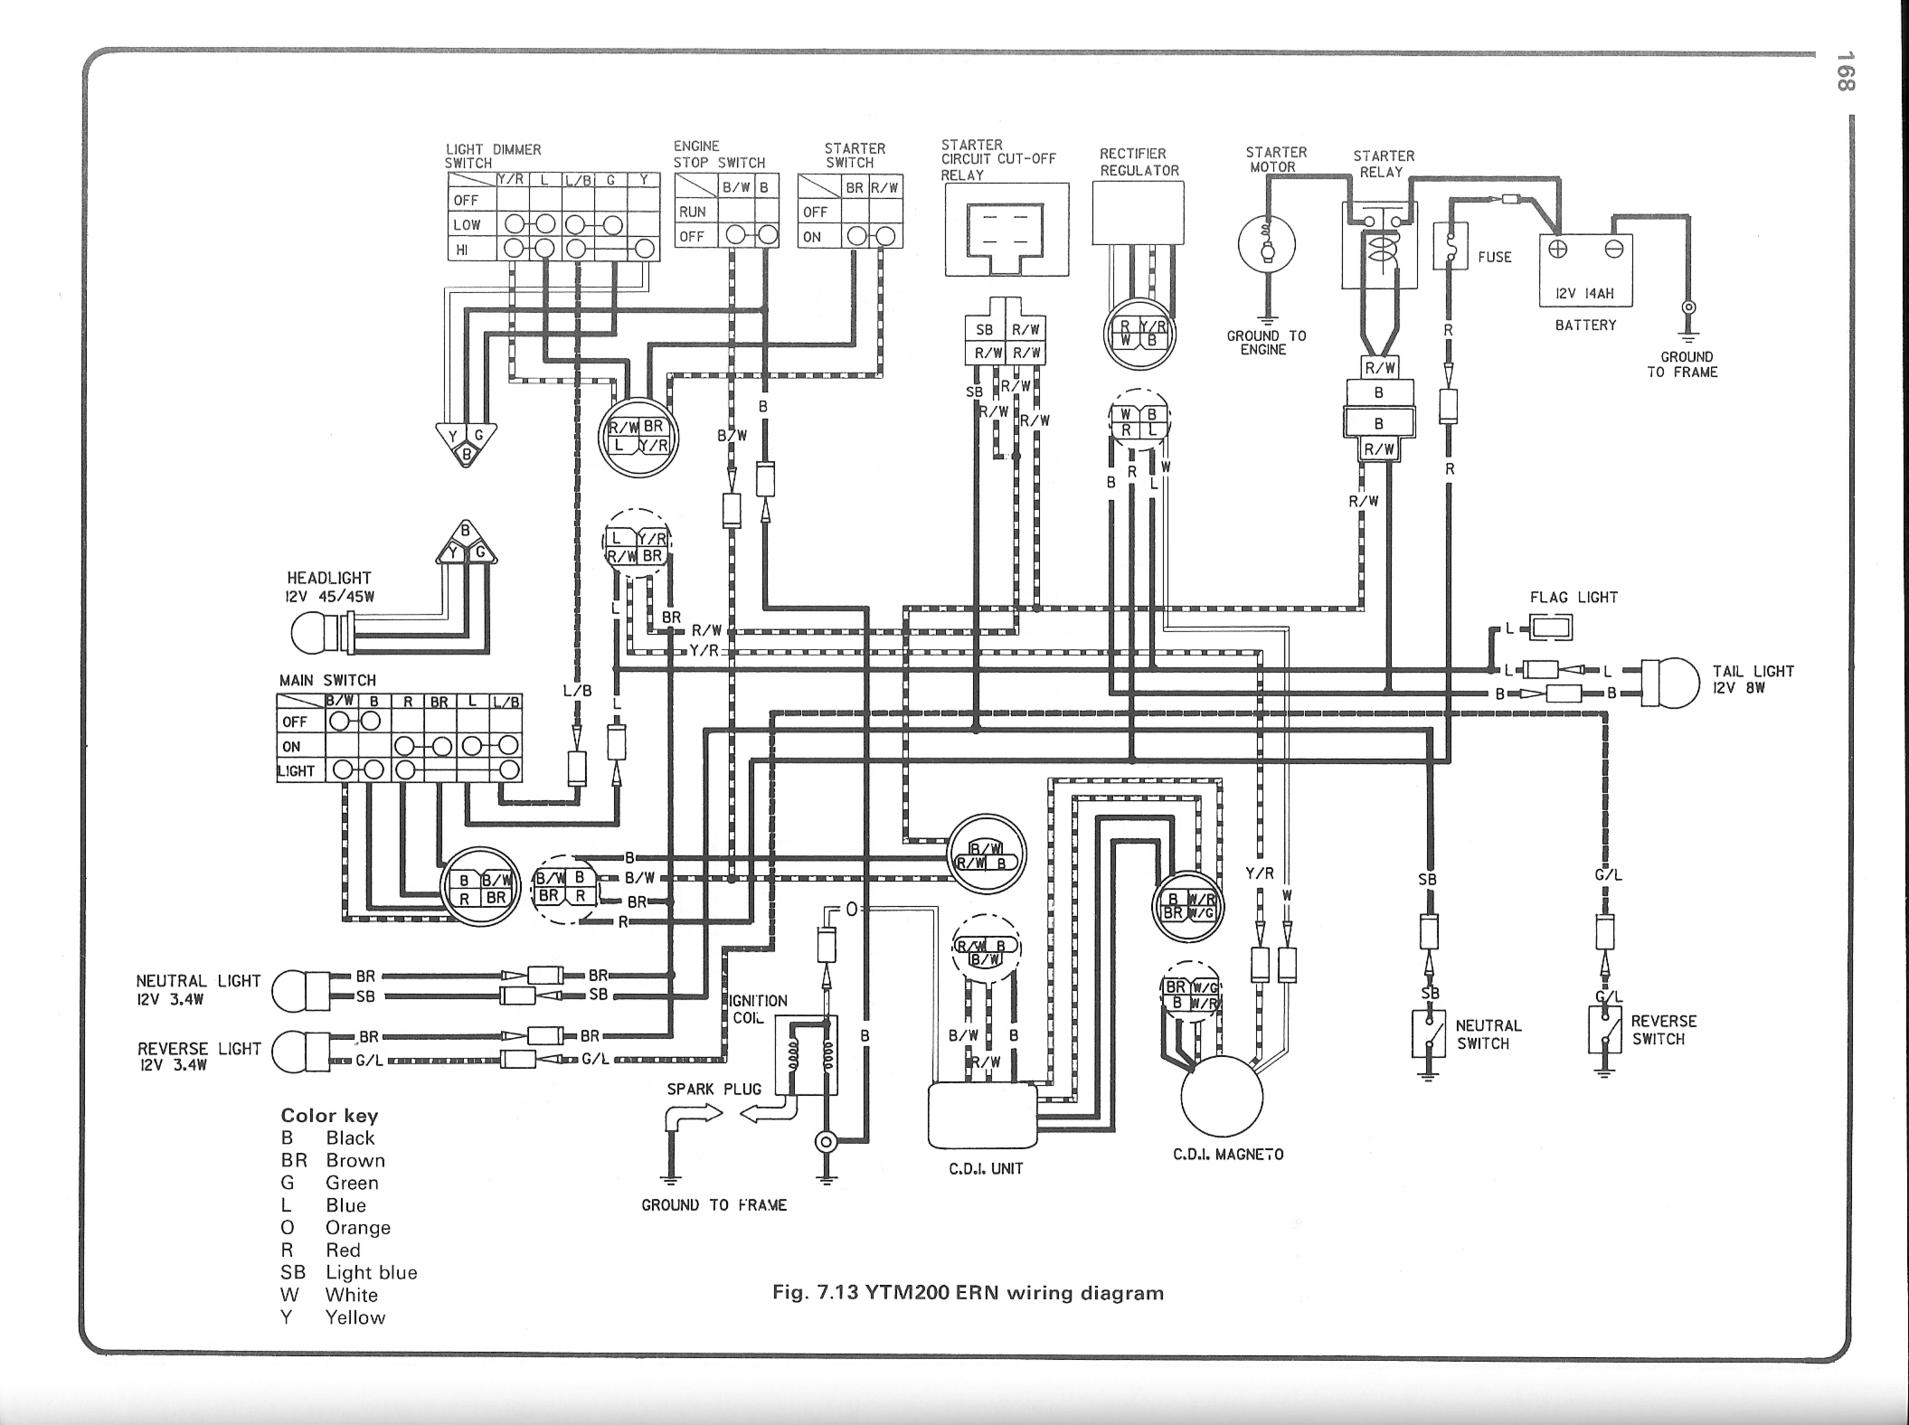 3wheeler world - yamaha ytm200ern three-wheeler wiring diagram four wheeler wiring diagram kawasaki four wheeler wiring diagram